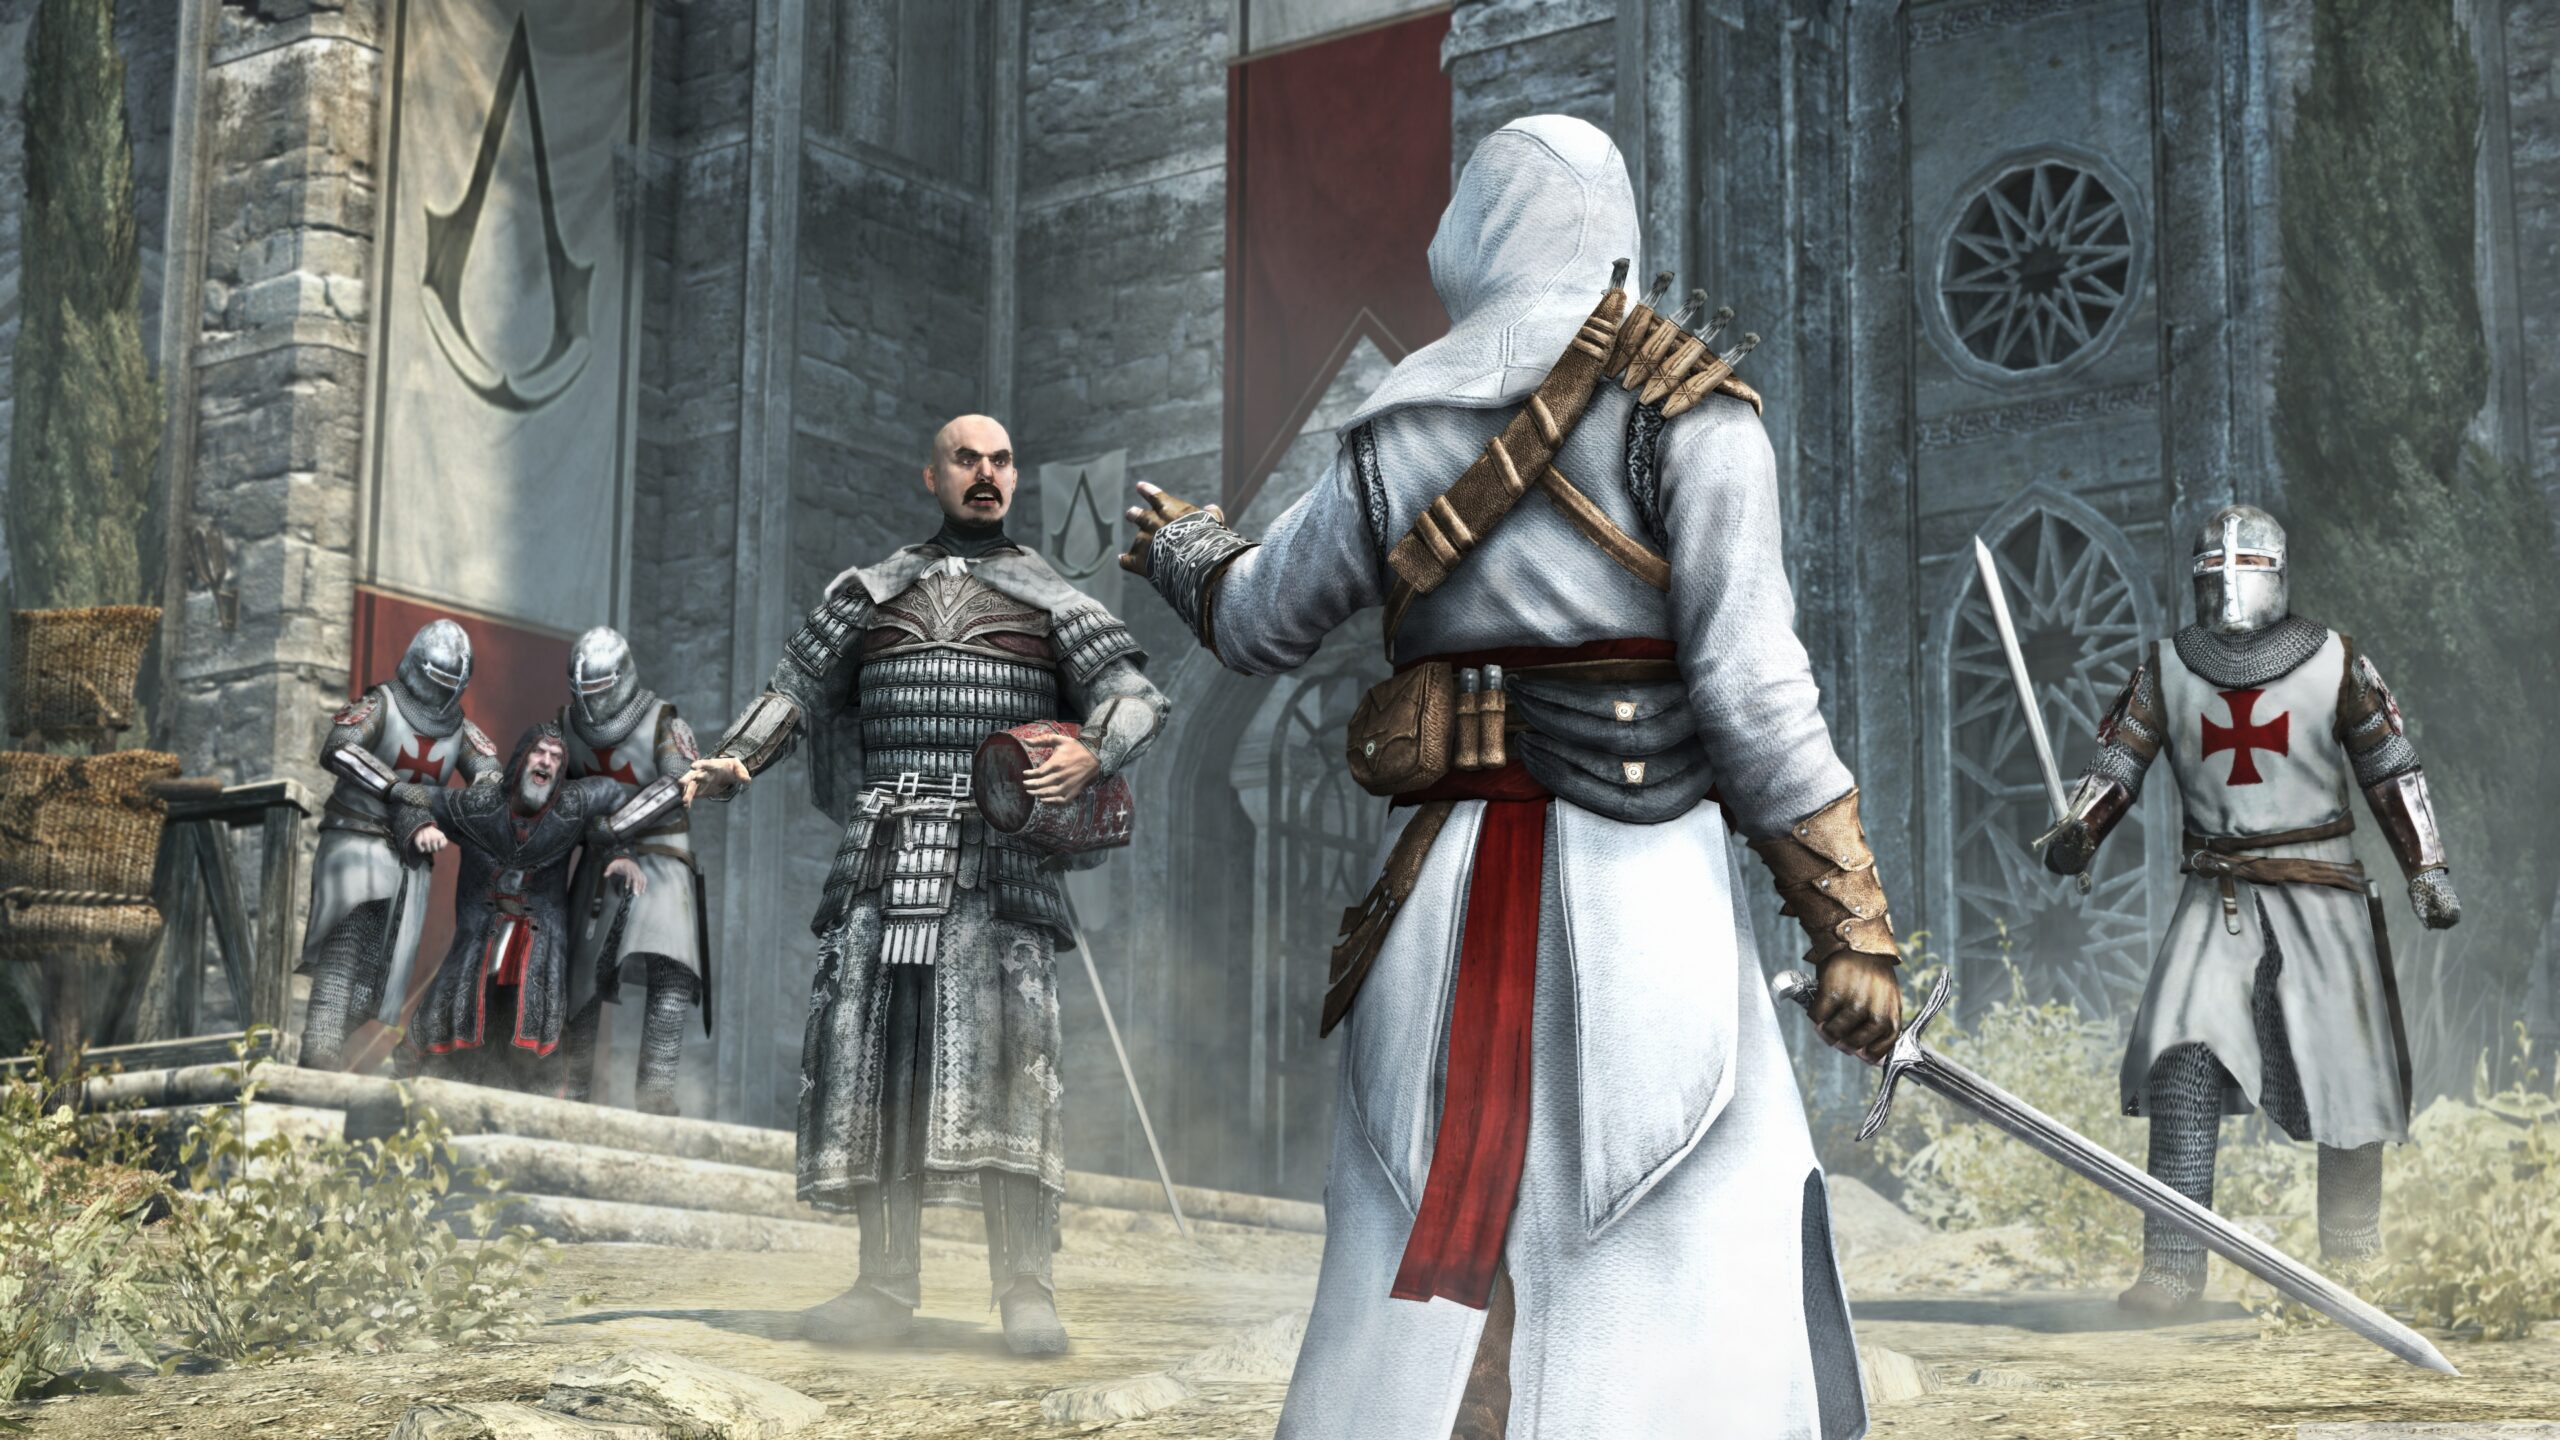 Games into Books - Assassin's Creed|Books Based on Video Games - Tomb Raider|Uncharted - Games into Books